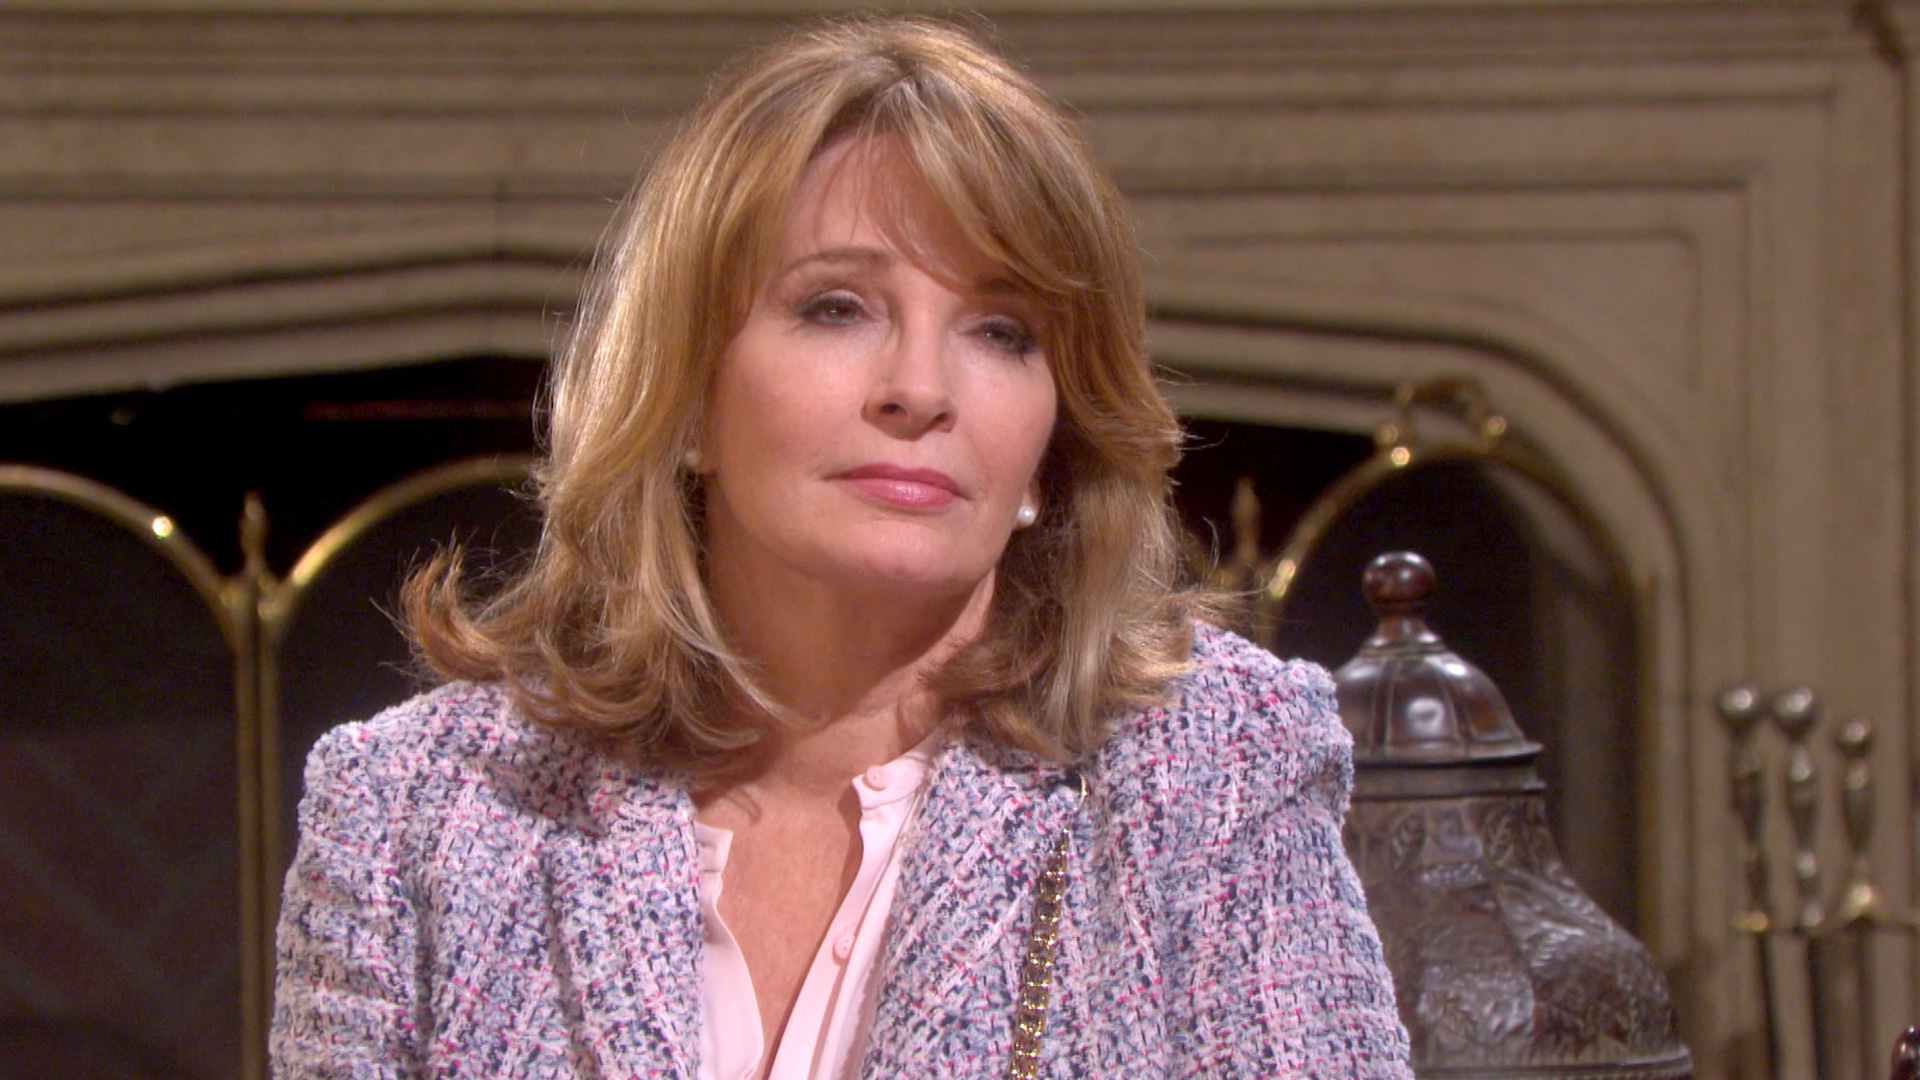 Marlena makes a startling discovery.